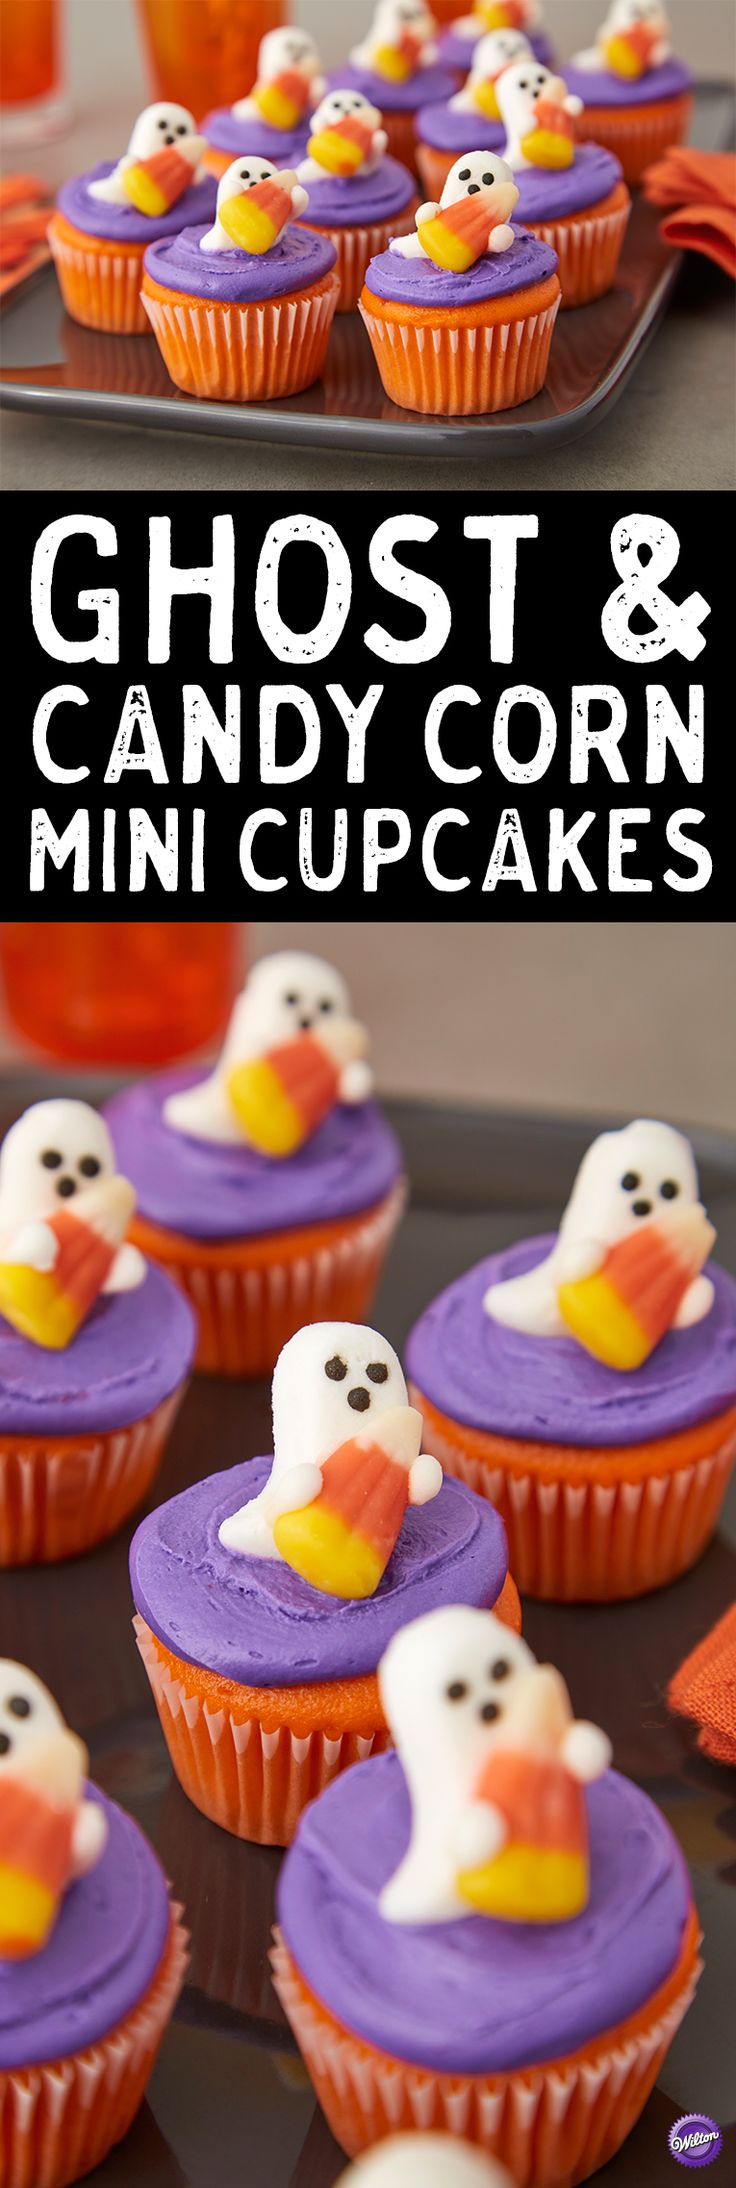 ghost and candy corn mini cupcakes who doesnt love a two bite cupcake these tiny treats are adorable and easy to make using the wilton royal icing ghost